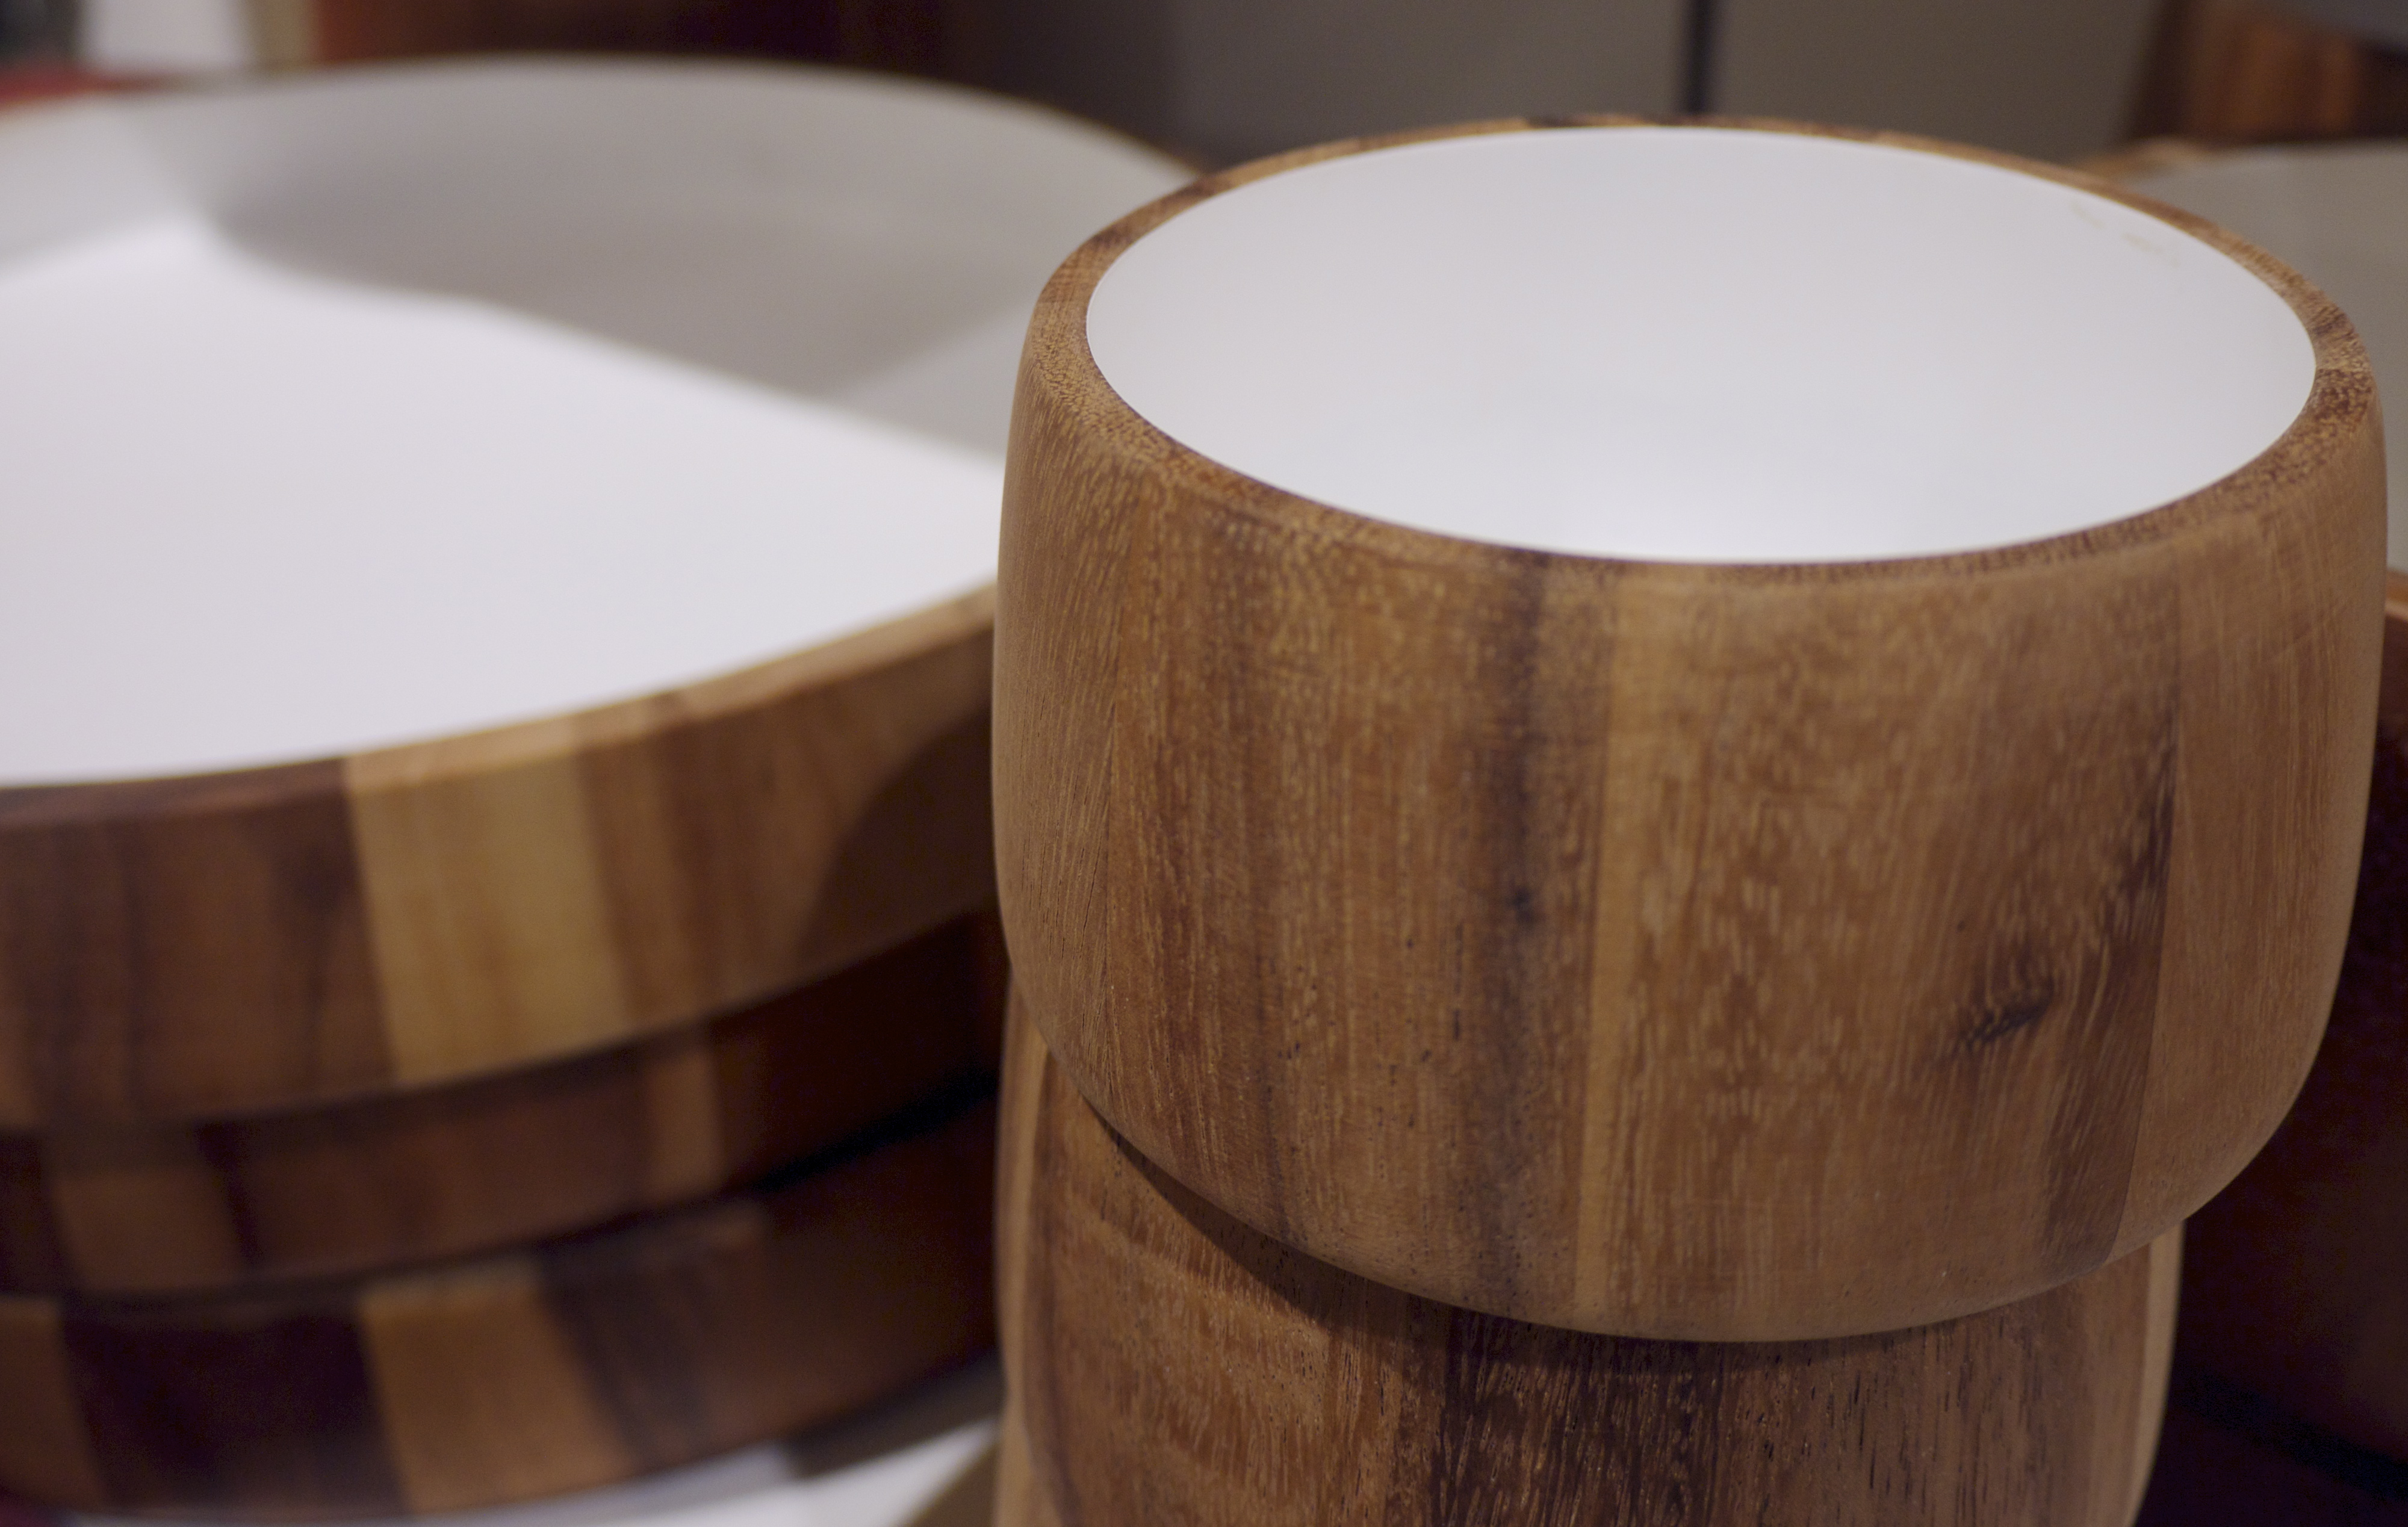 Wooden Bowls from Freedom